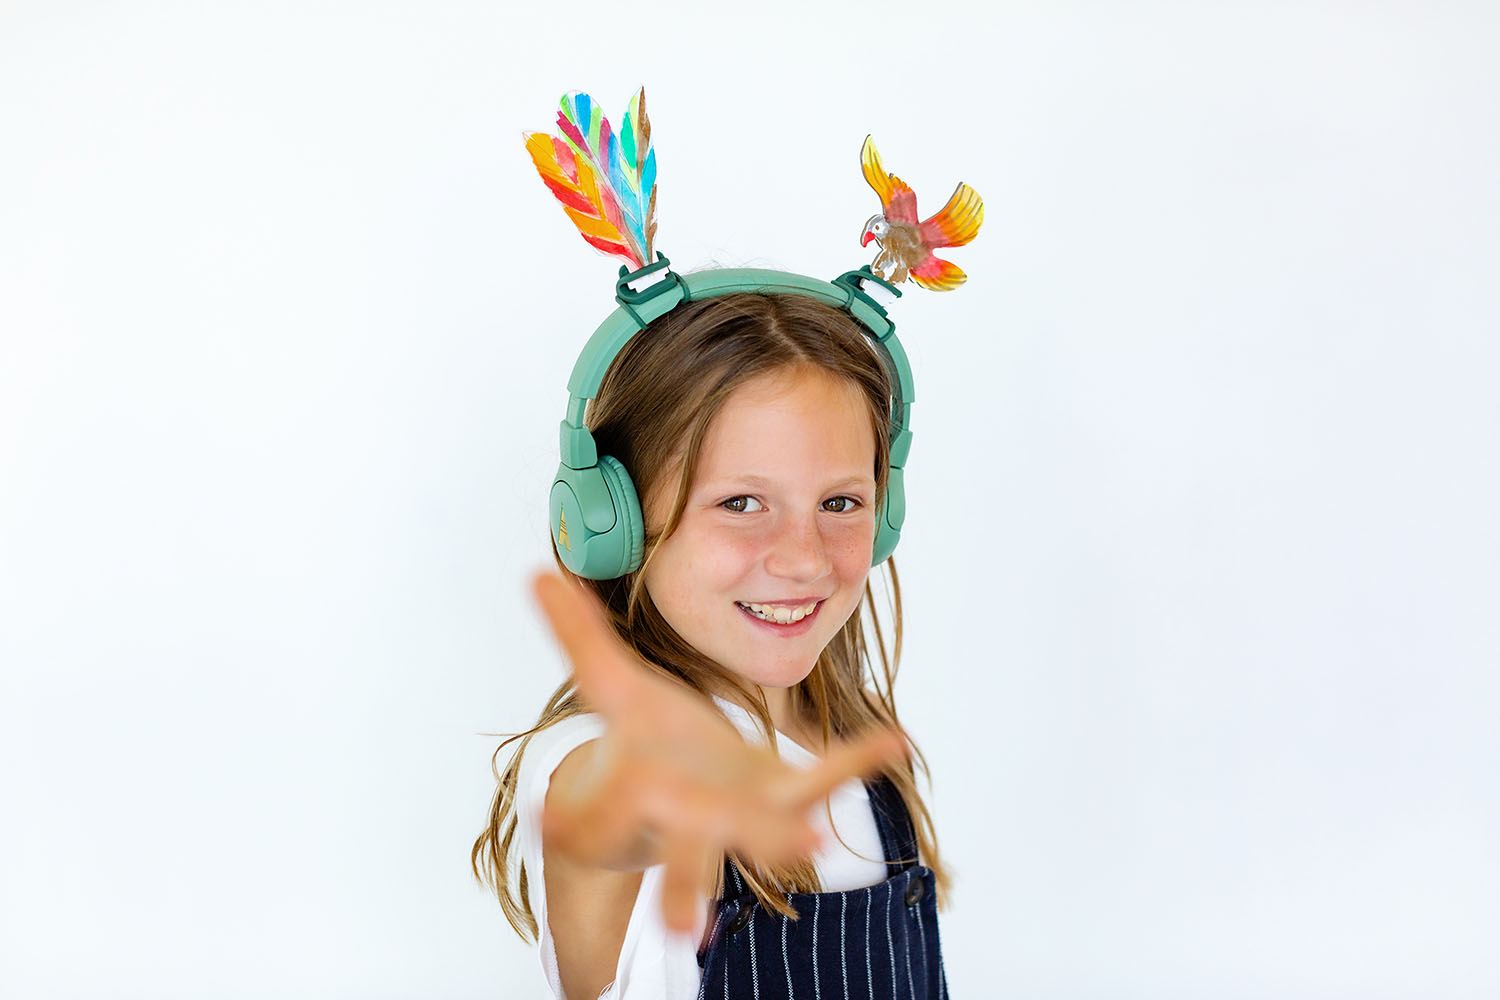 Jurriaan Huting fotografie Nijmegen commerciele conceptuele Lifestyle fotografie - POGS Kids only Headphones